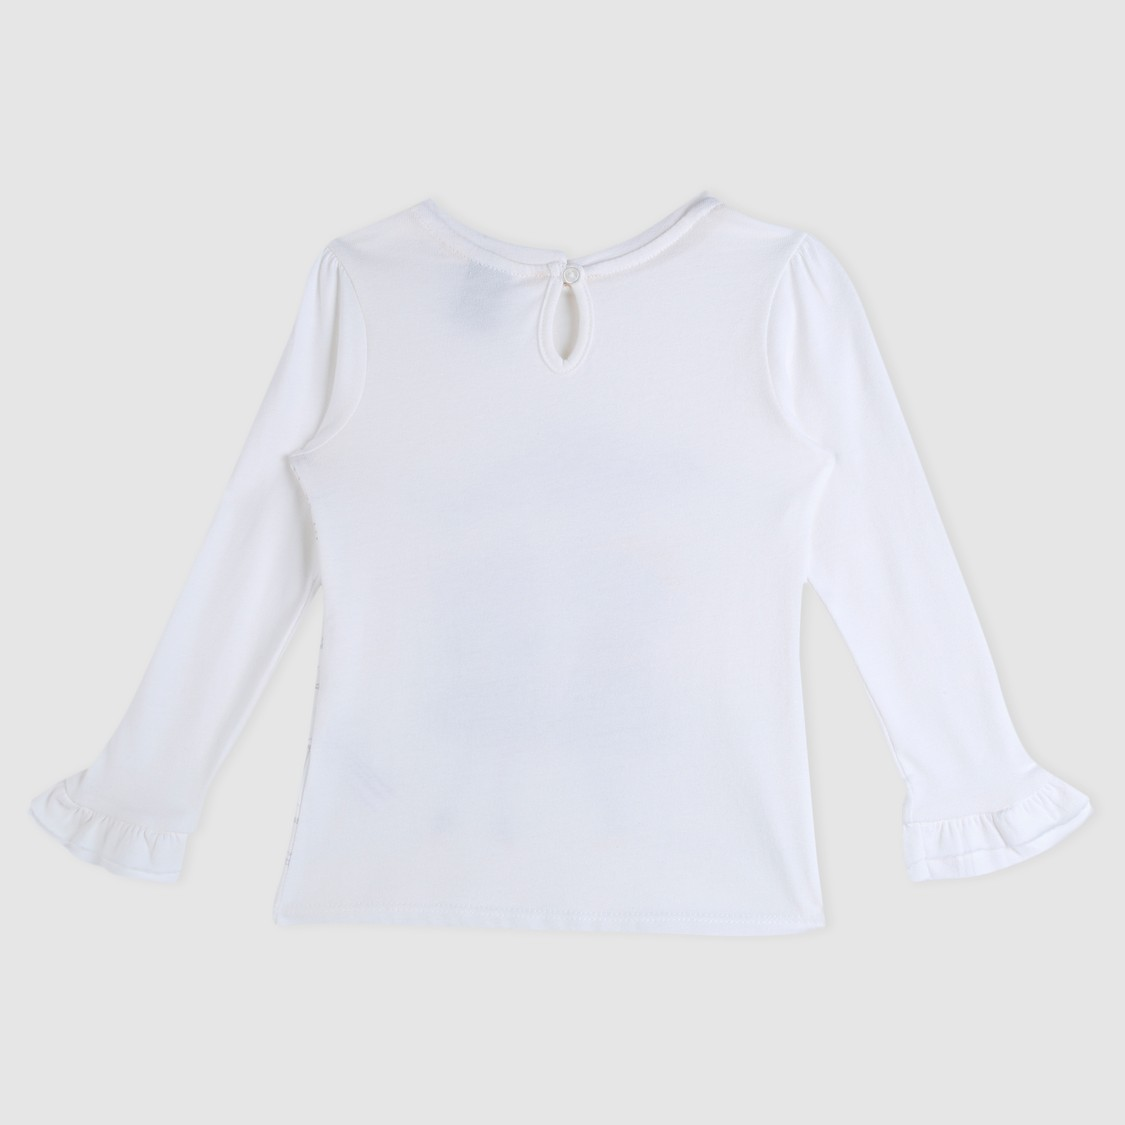 Long Sleeves Knit Top with Appliques and Ruffled Cuffs